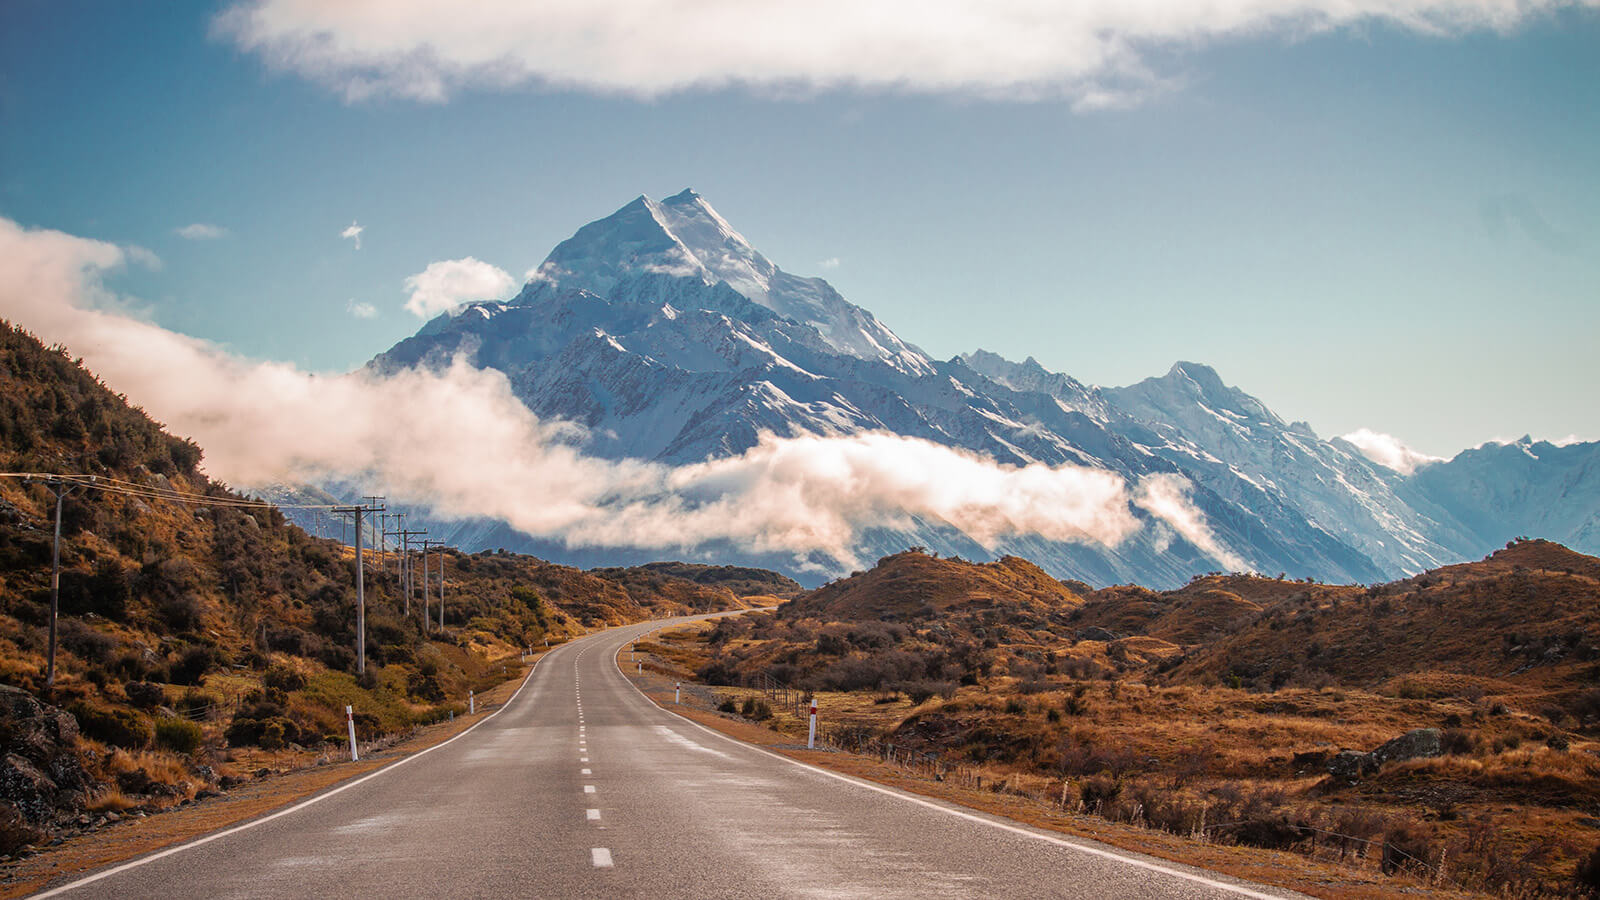 The road to Mount Cook Village, New Zealand